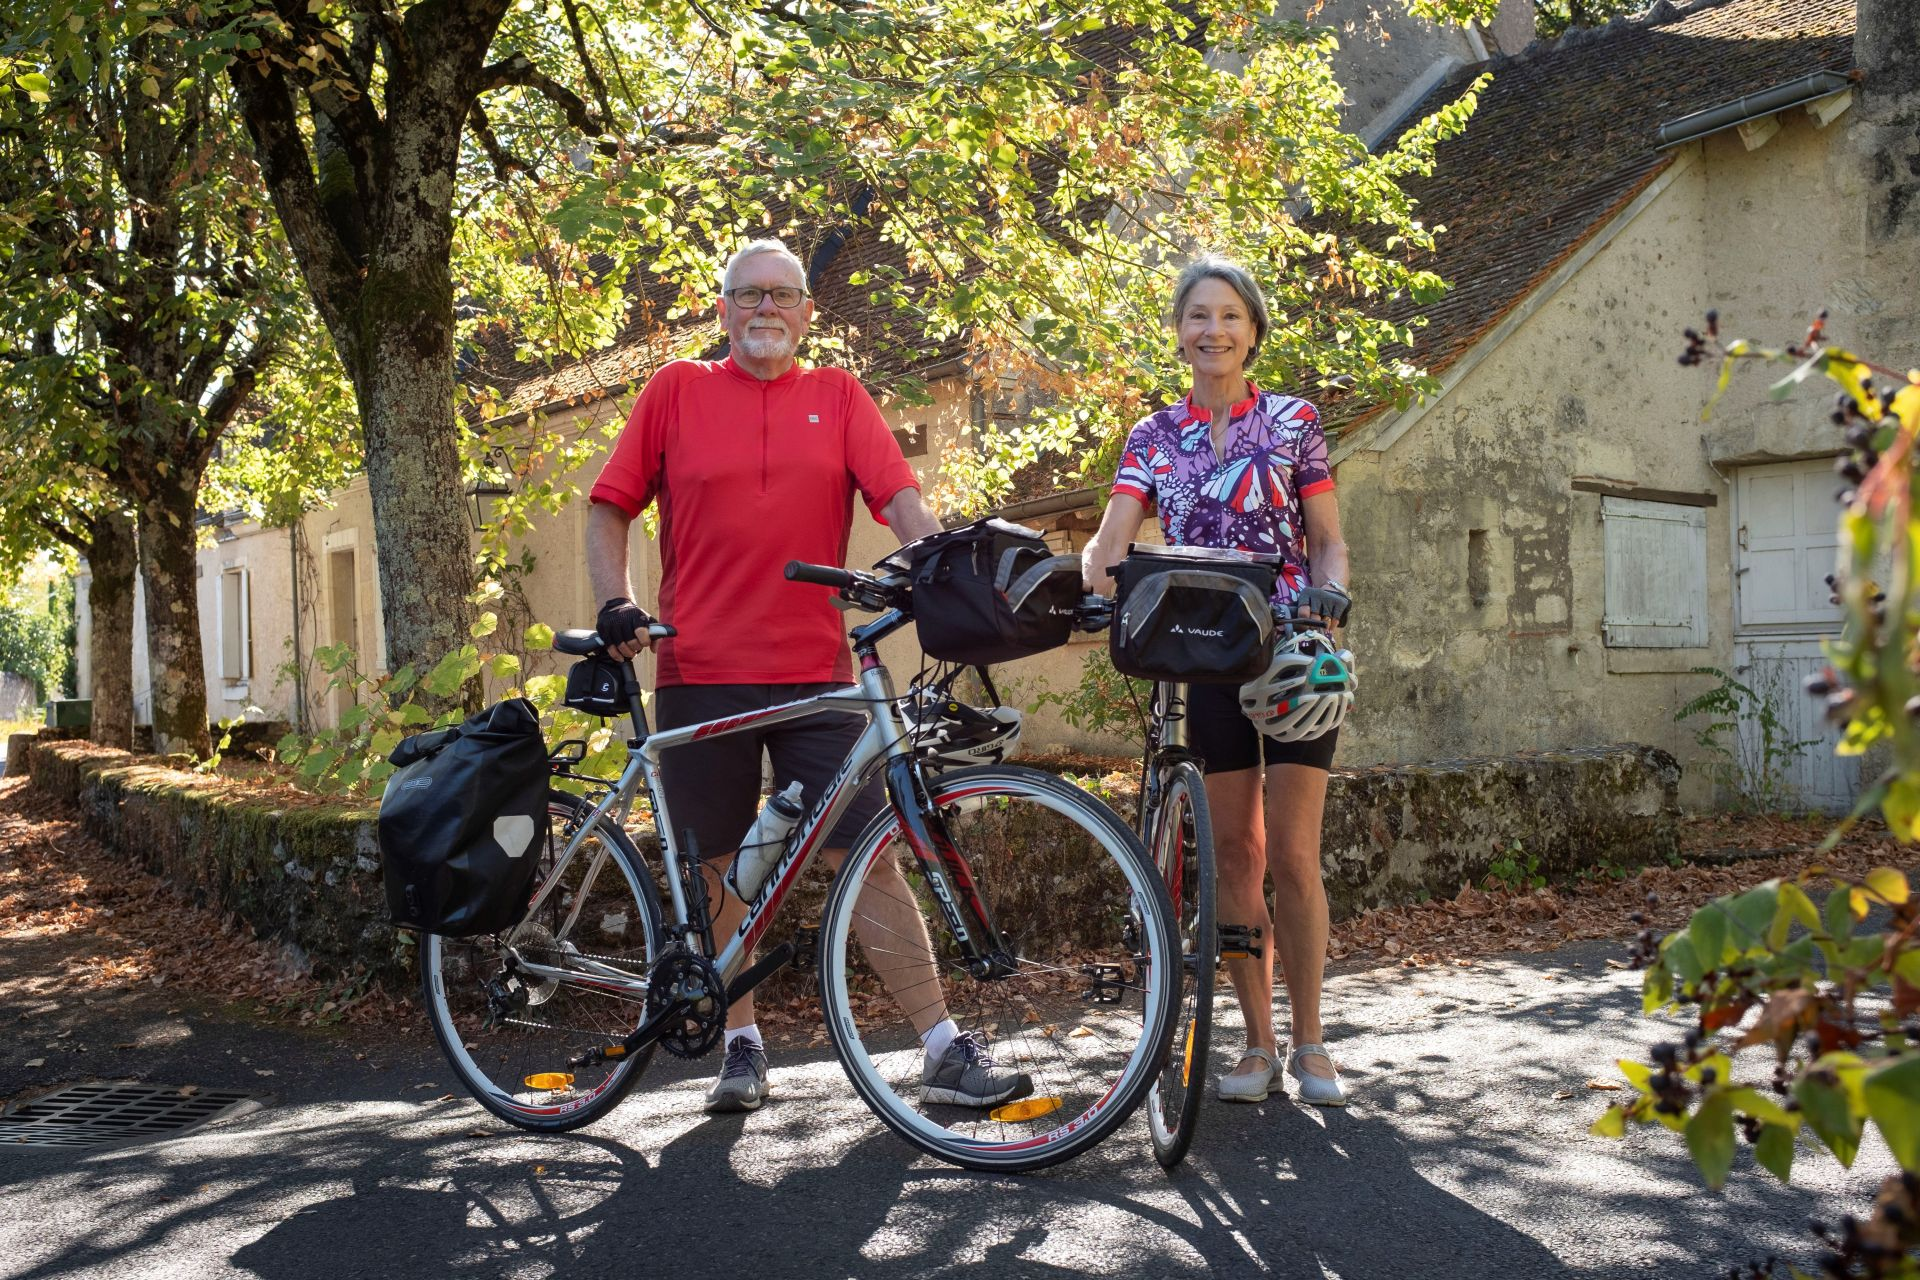 Randonnee tours offers cycling and walking trips in Europe & North America